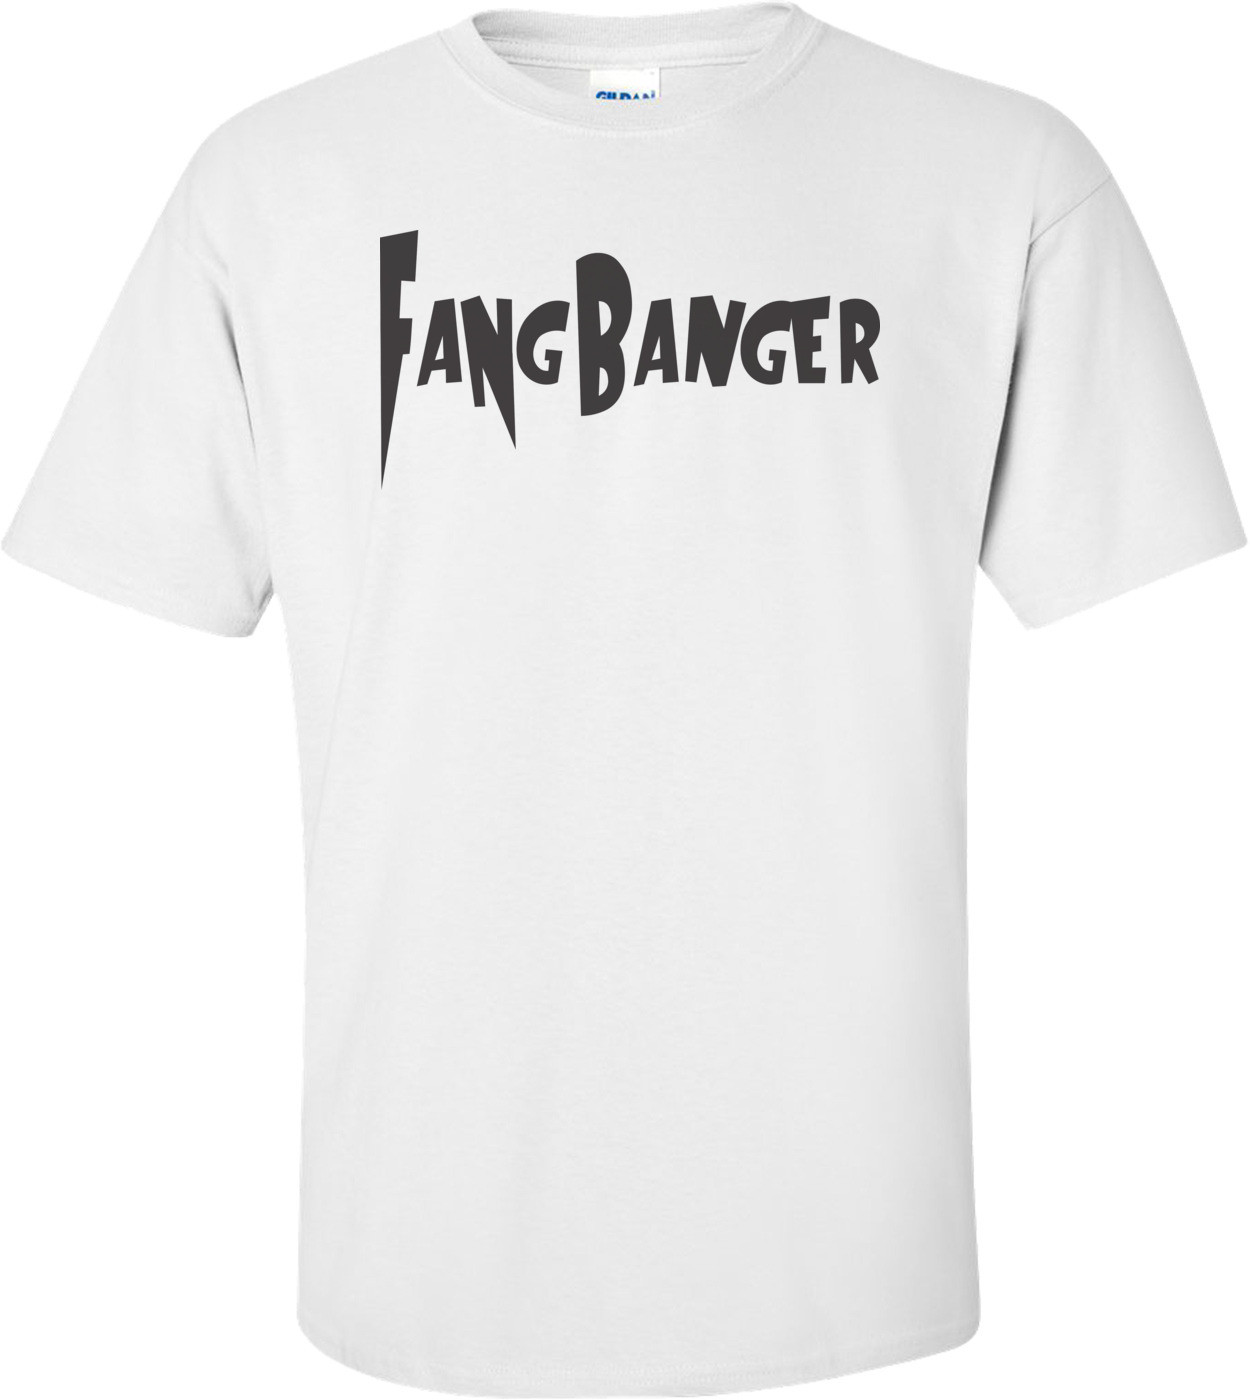 Fang Banger - True Blood T-shirt